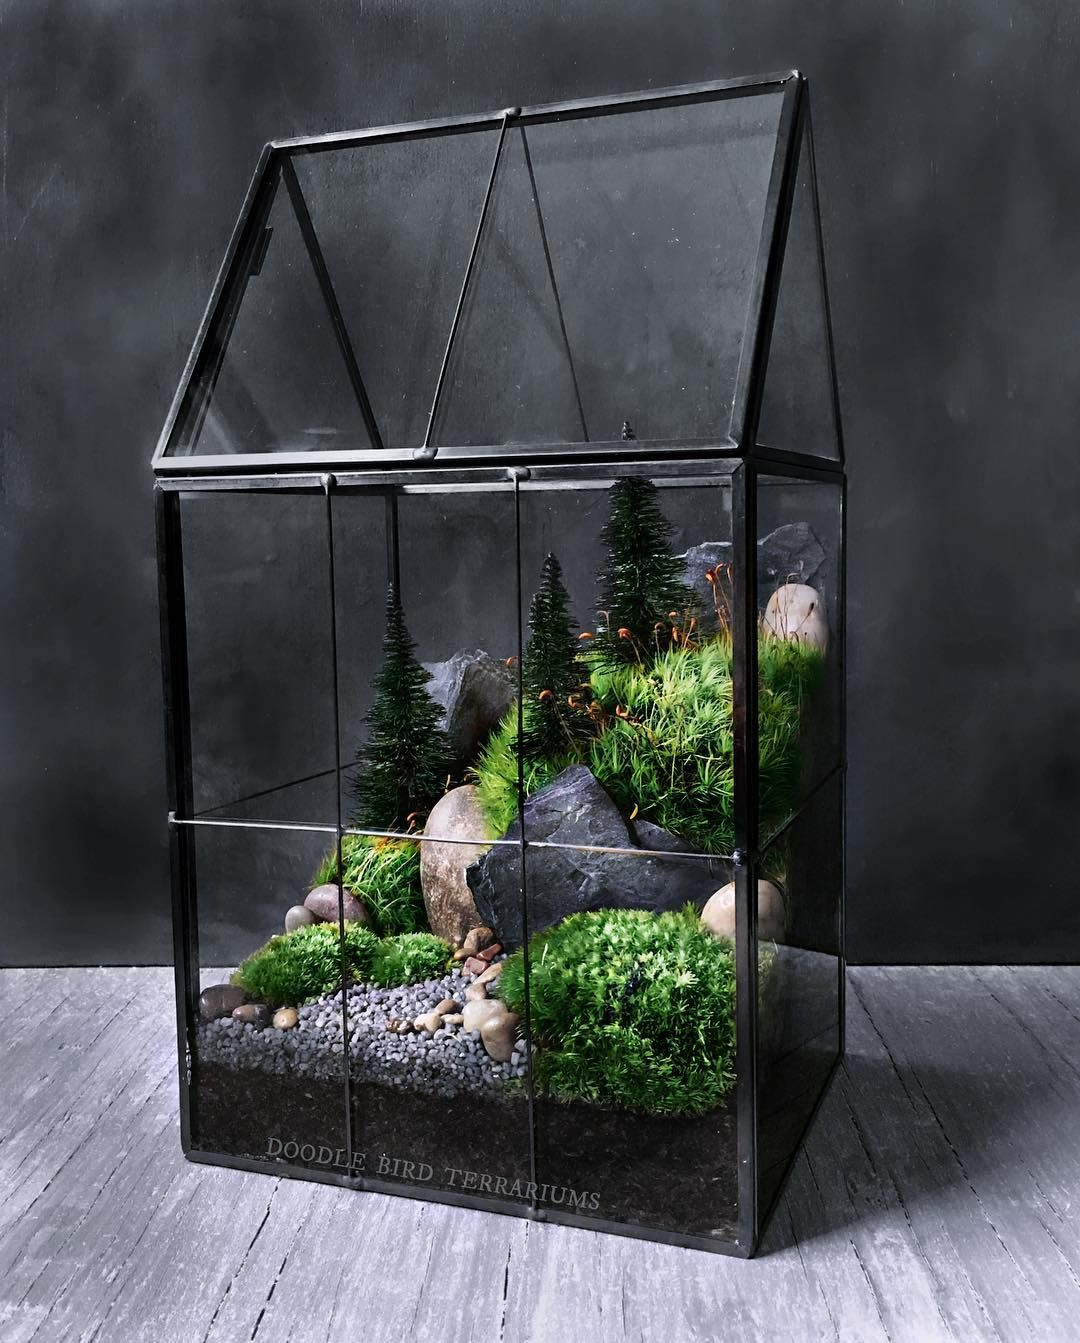 New In My Shop Greenhouse Terrarium Planted With Live Mosses And Faux Pine Trees It Has A Hinged Roof For Ea Moss Terrarium Large Greenhouse Garden Terrarium